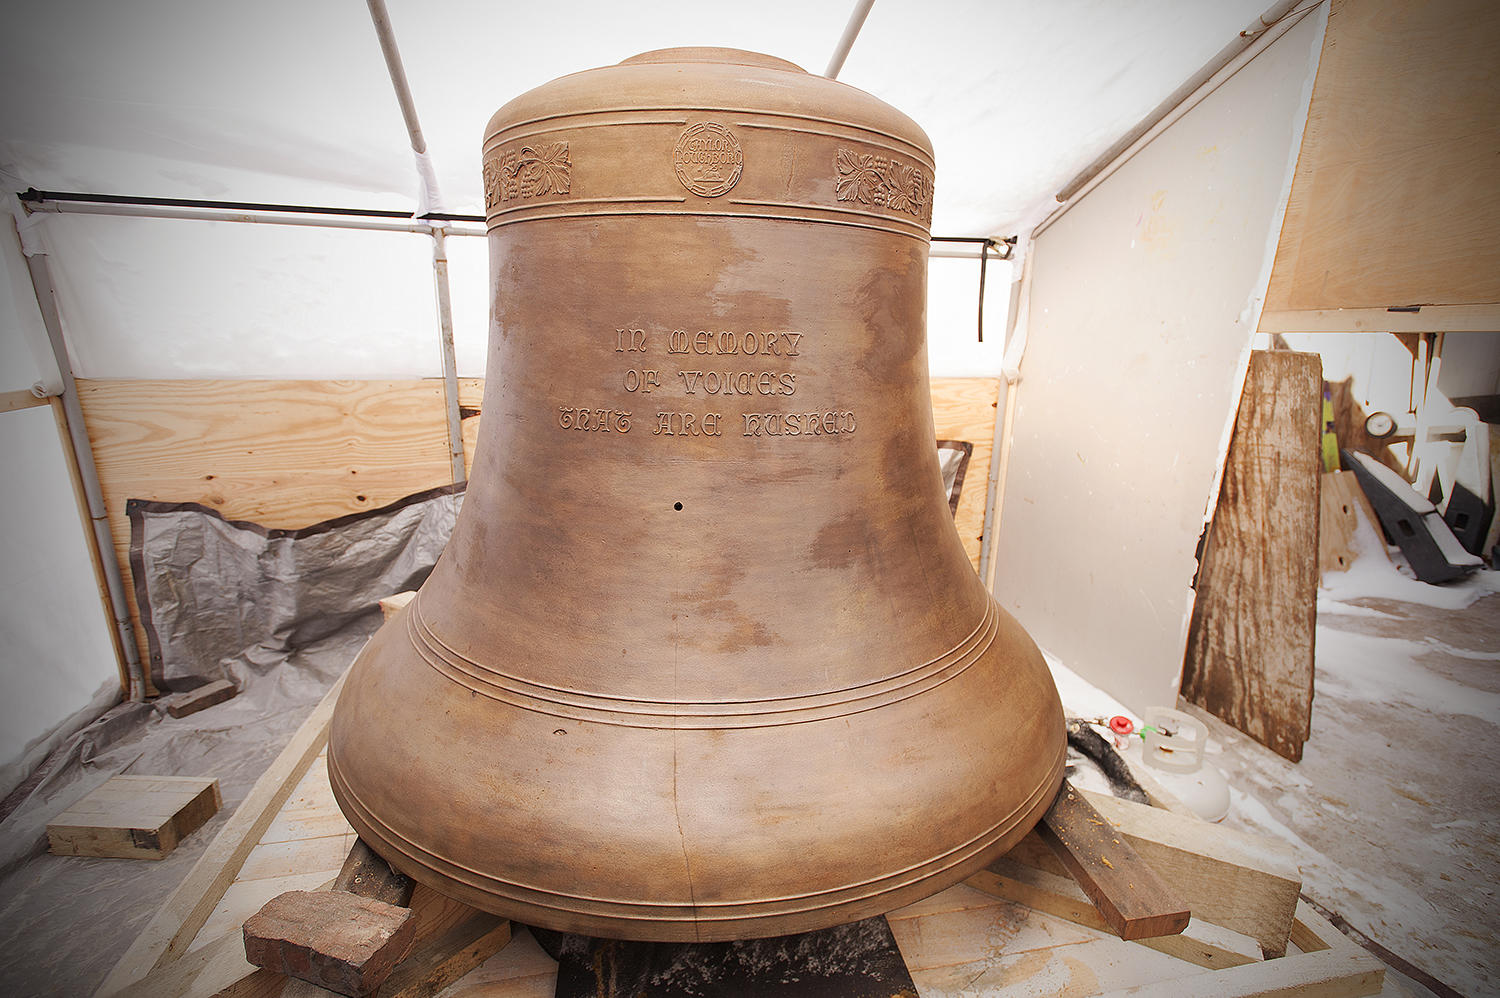 Memorial Church Bell during restoration